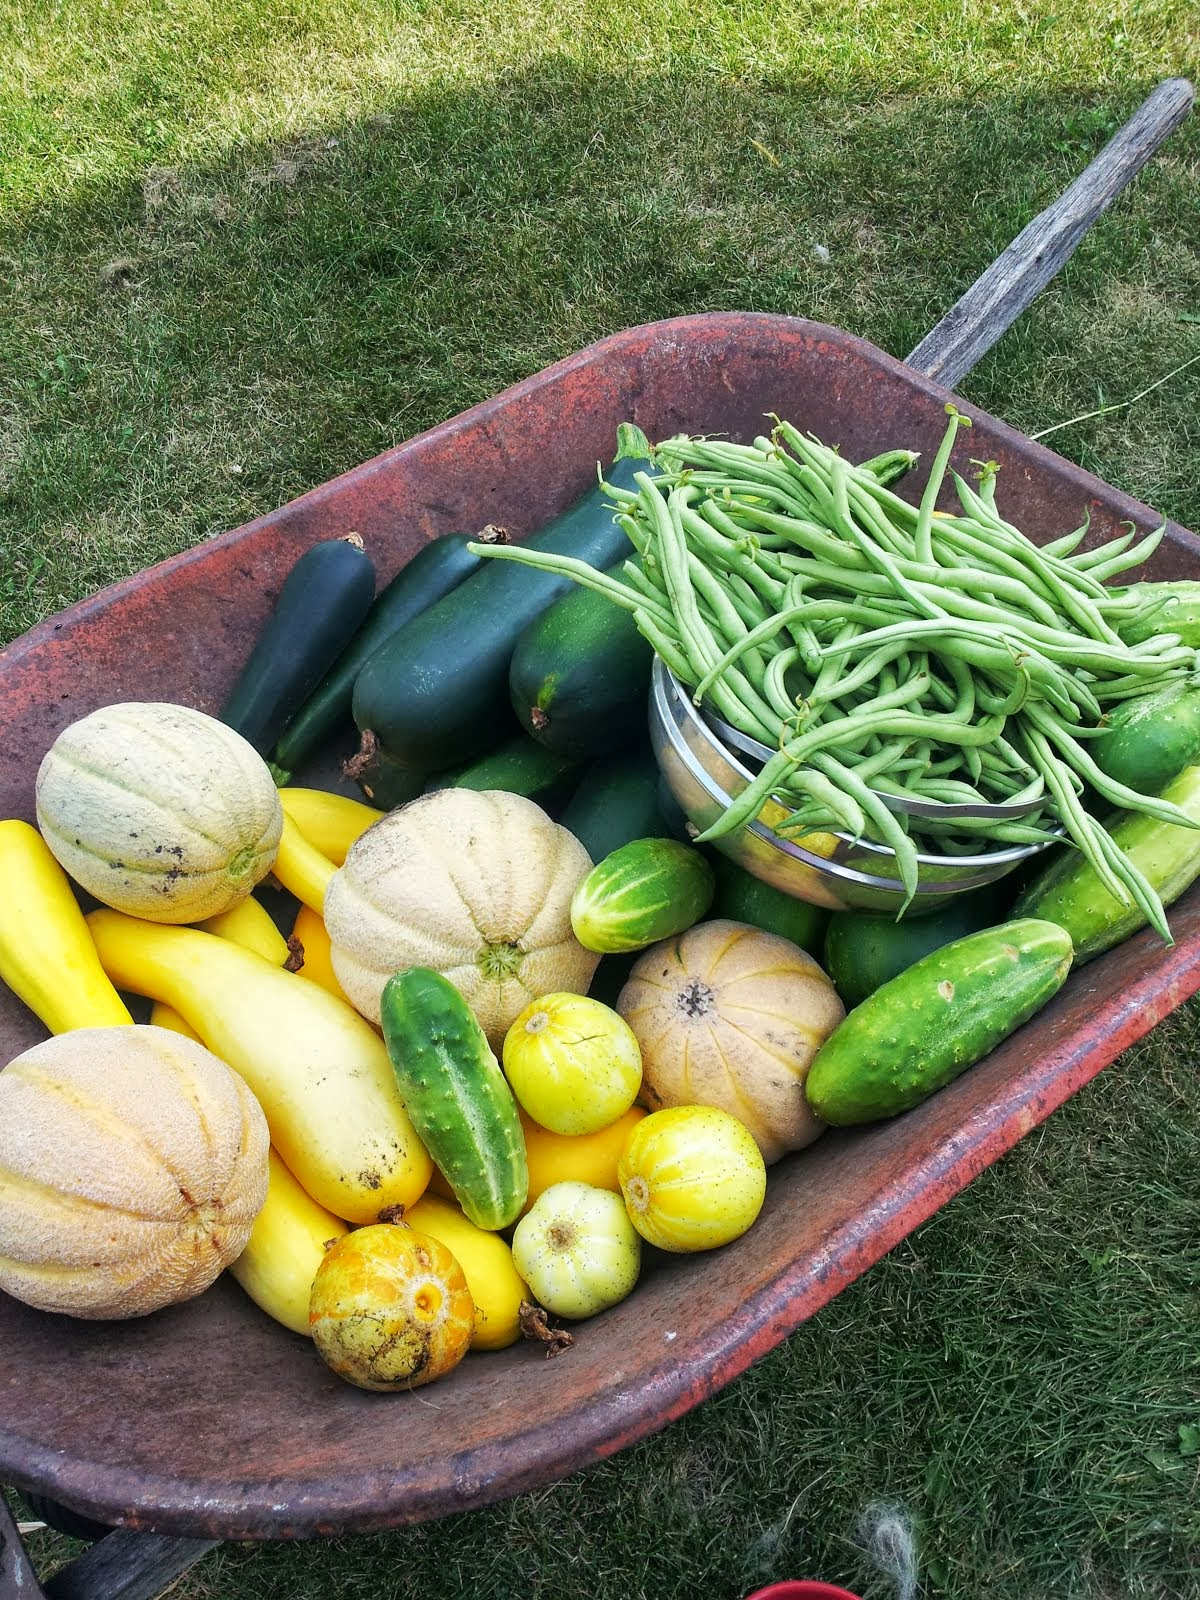 beans melons and summer squashes